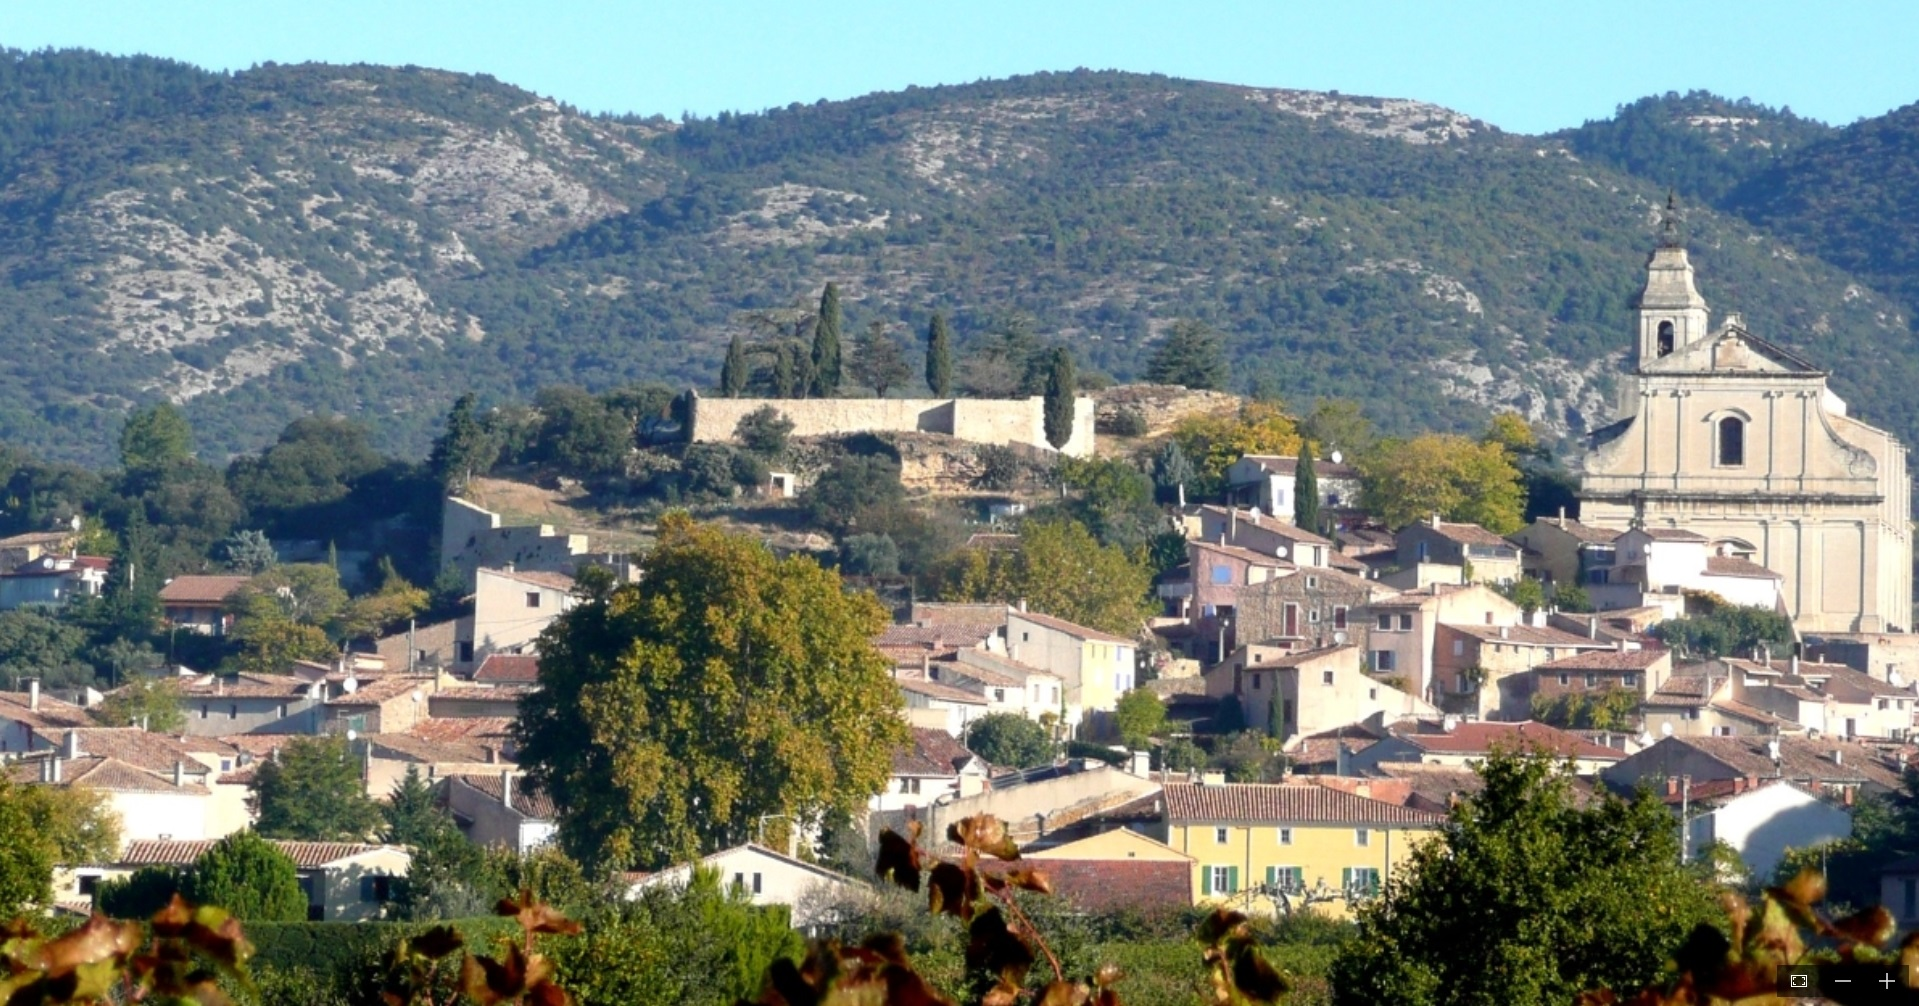 Bedoin village